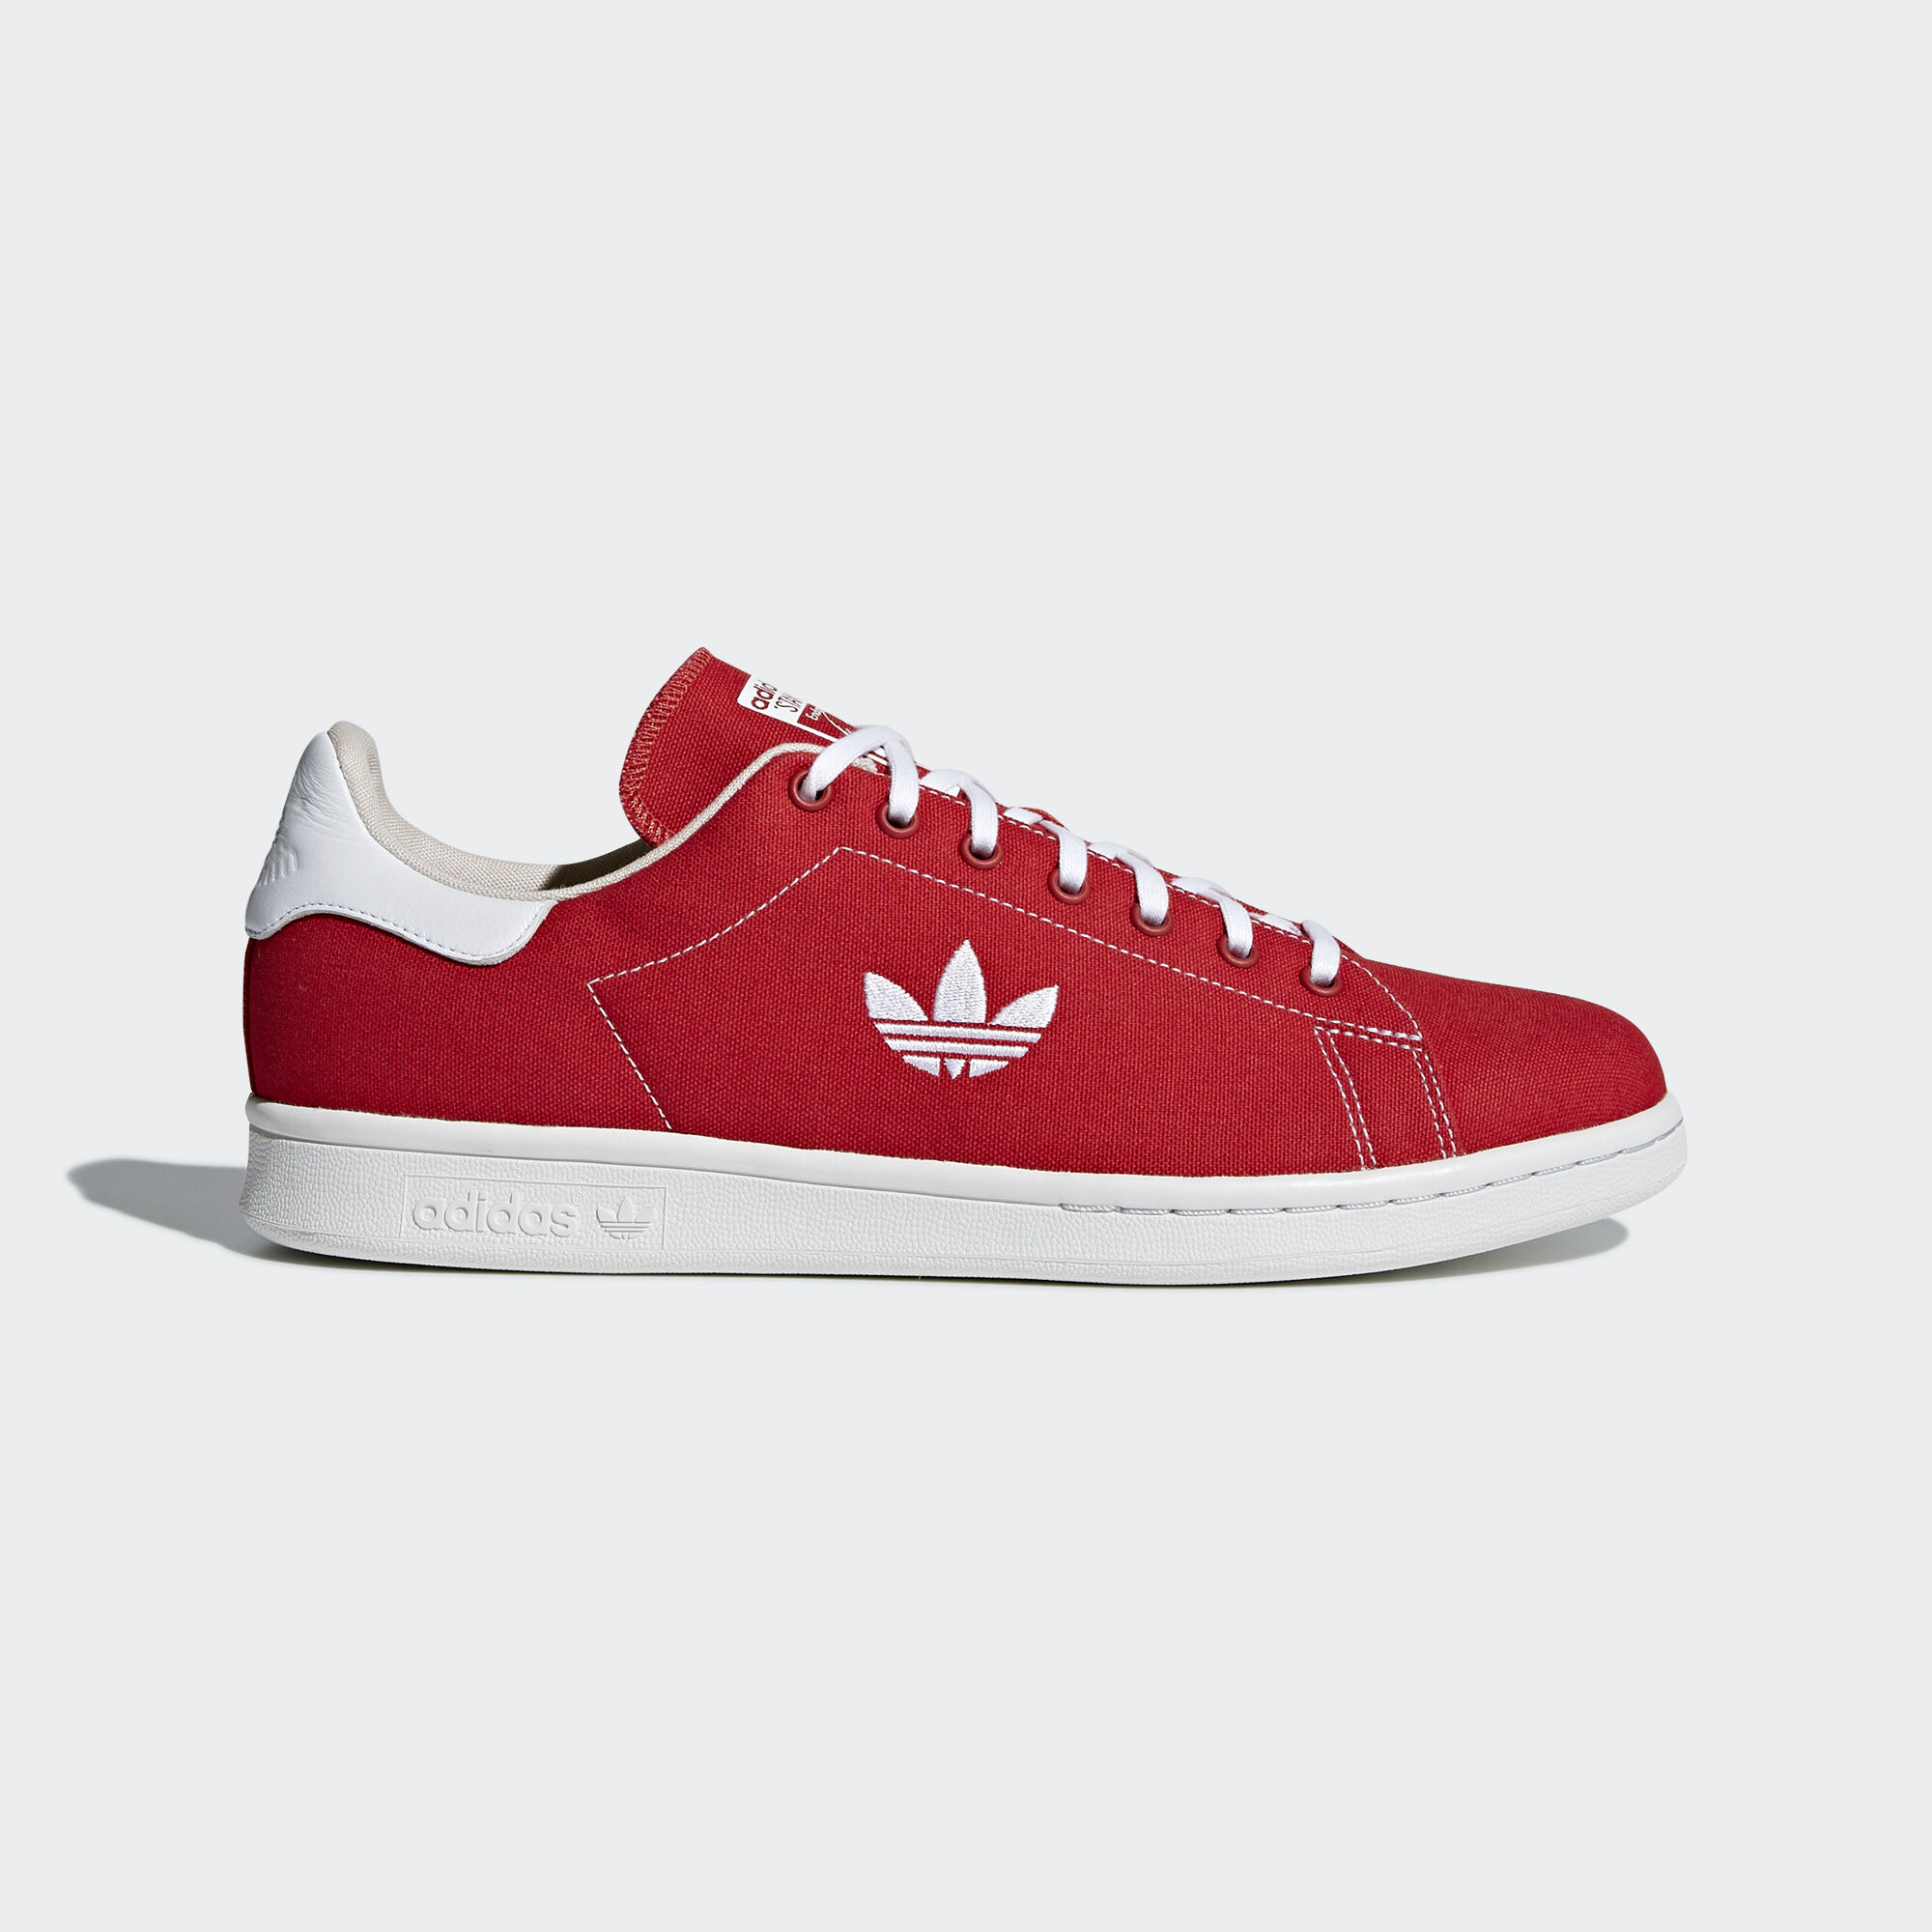 Adidas Stan Smith Shoes Red Adidas Regional